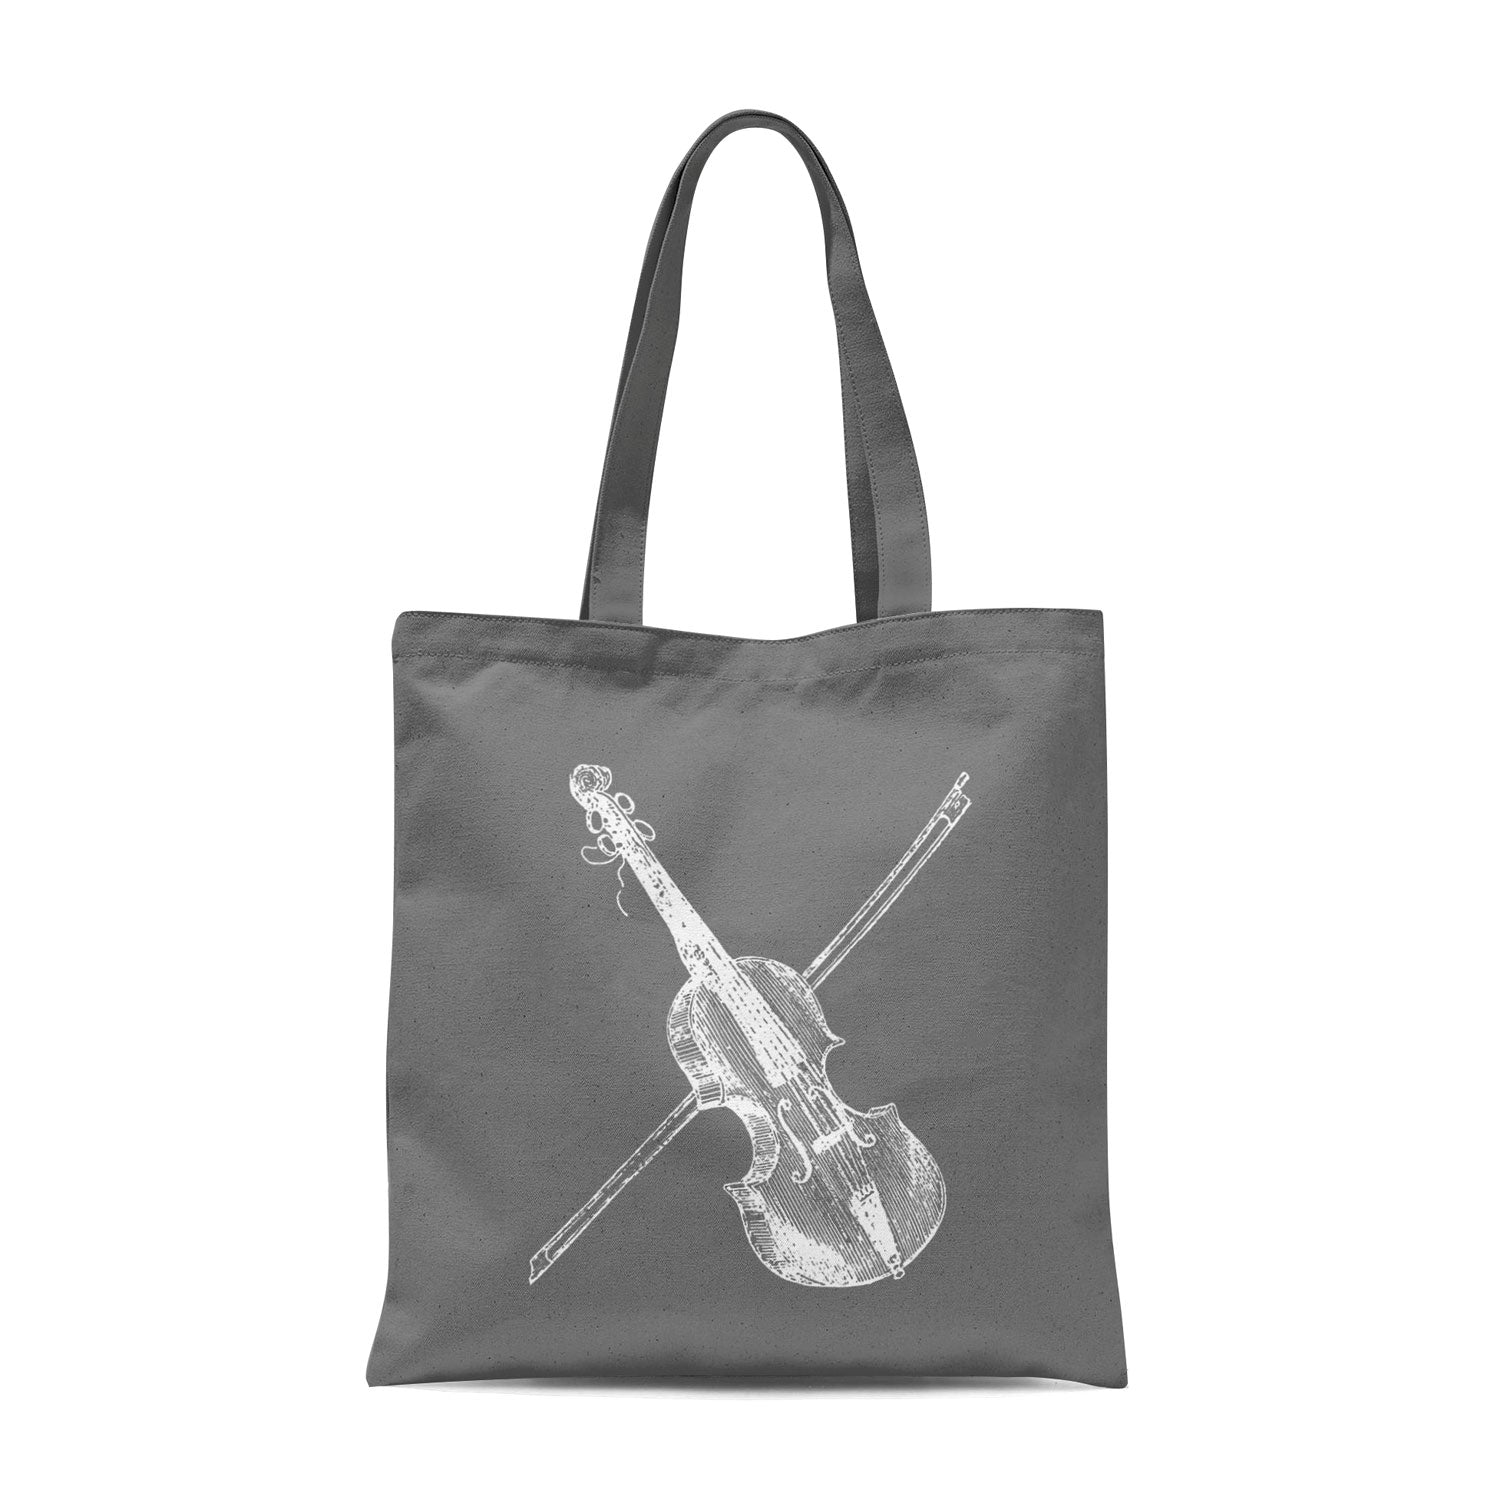 grey tote bag with white violin illustration